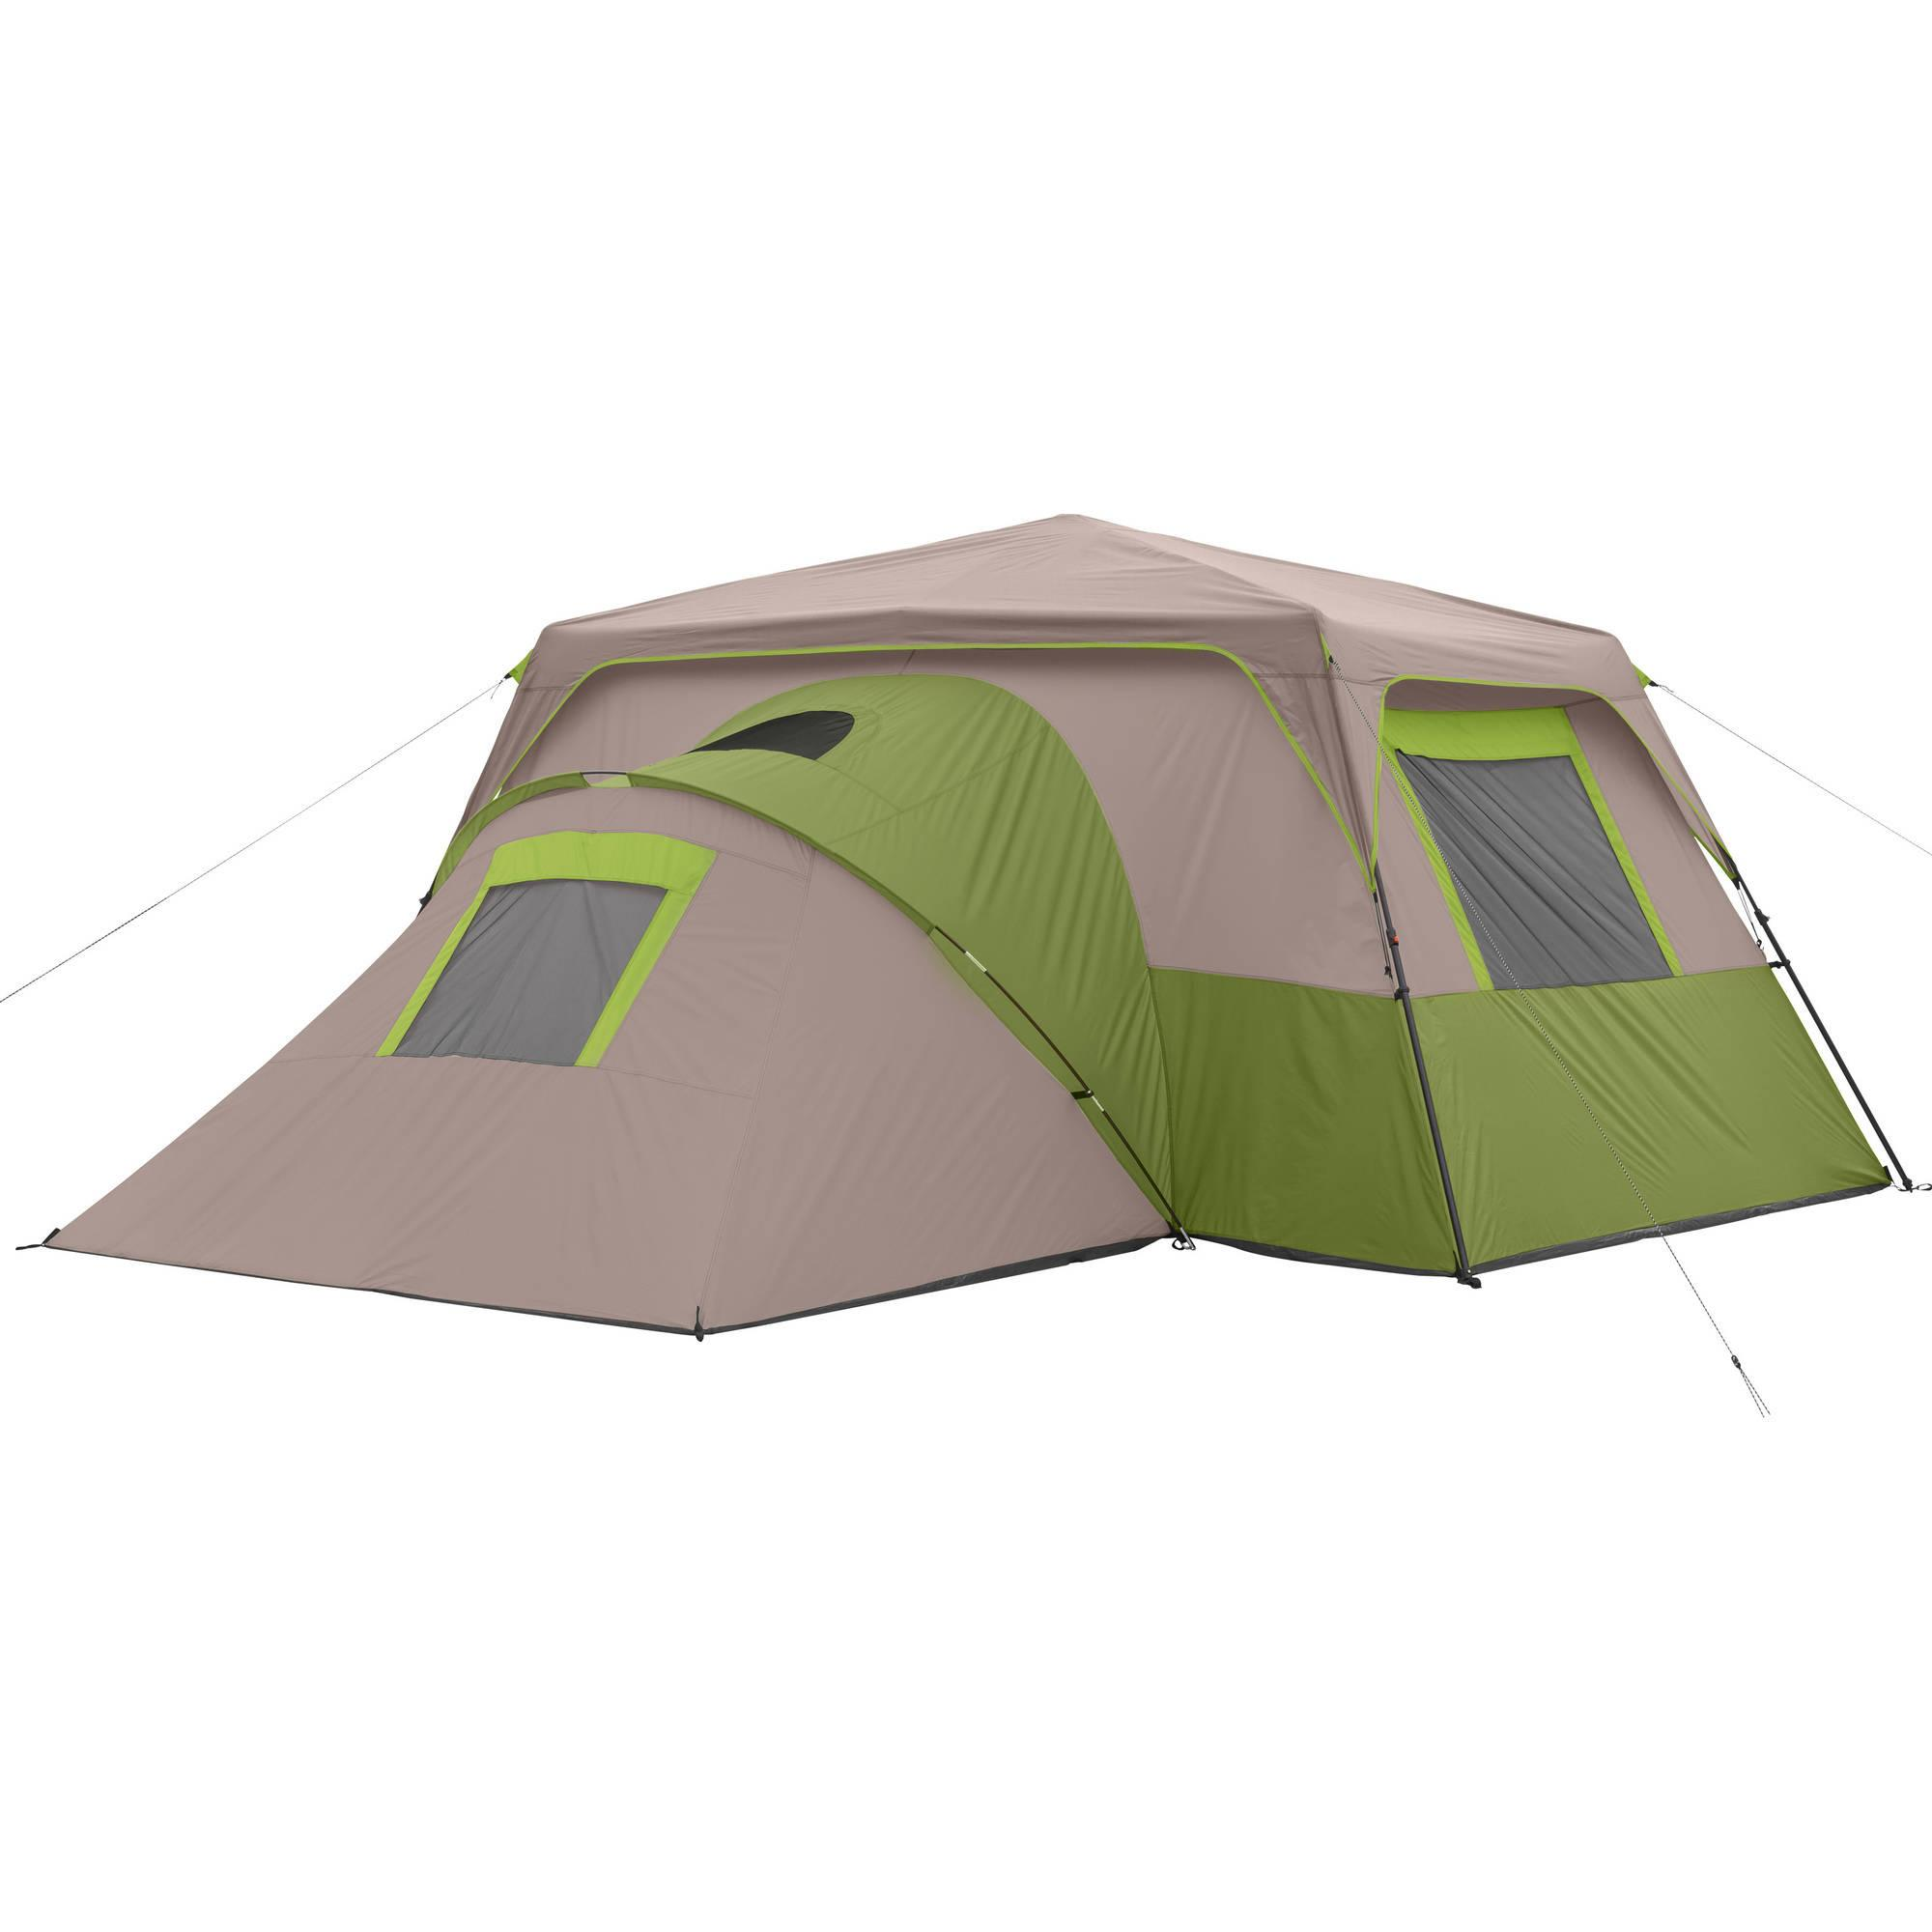 3 Room Instant Tent : Ozark trail person room instant cabin tent ebay